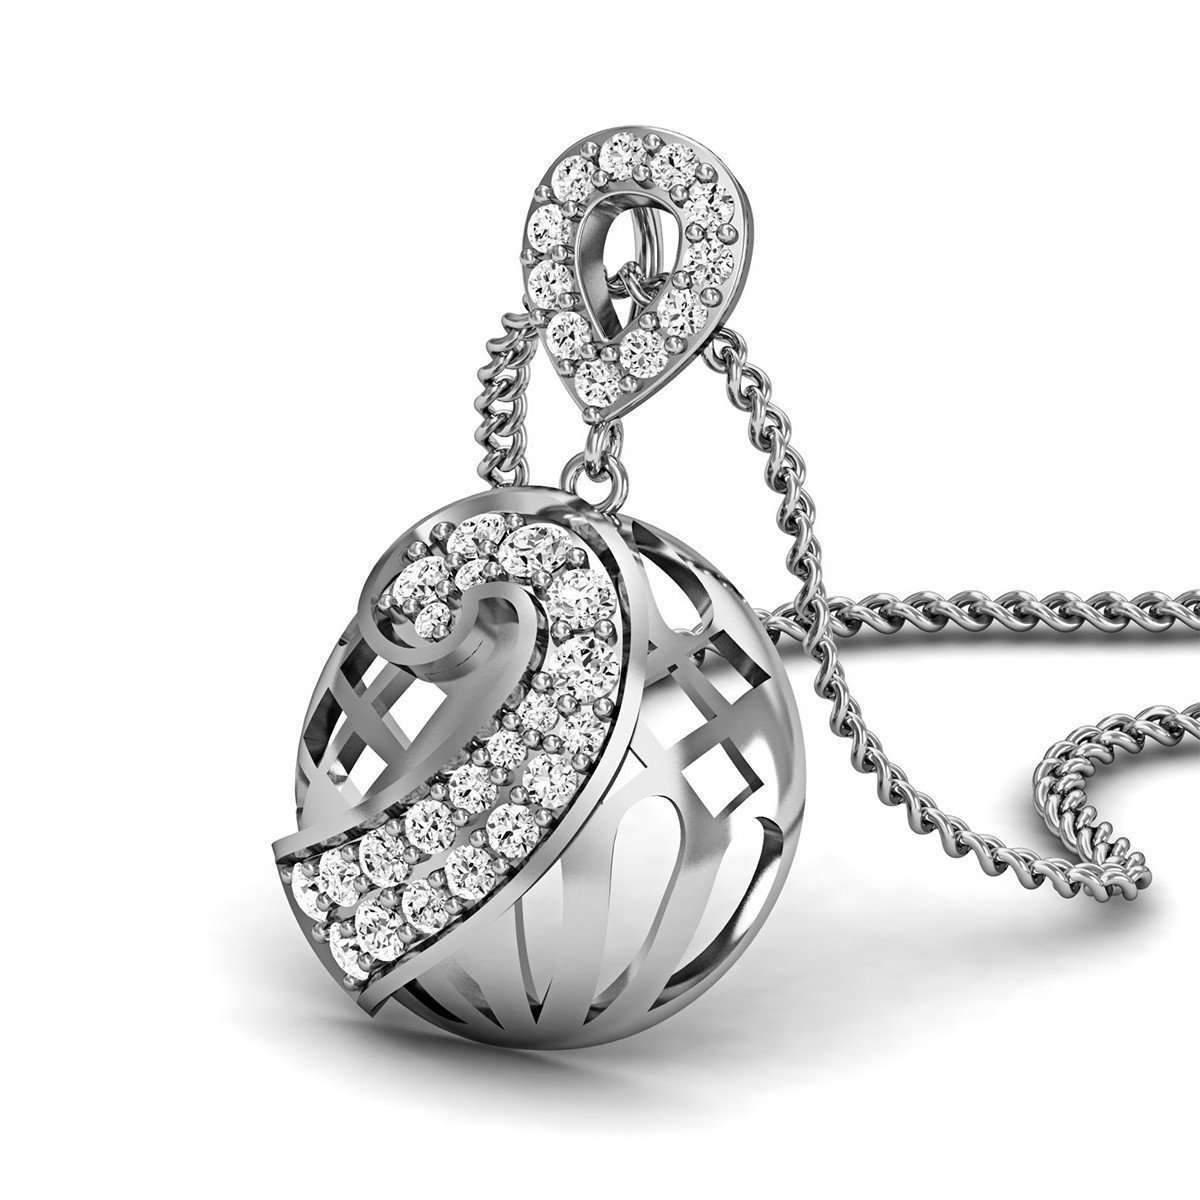 Diamoire Jewels Quality 14kt White Gold Nature Inspired Diamond Pendant in a Pave Setting H7tS5v5AQs